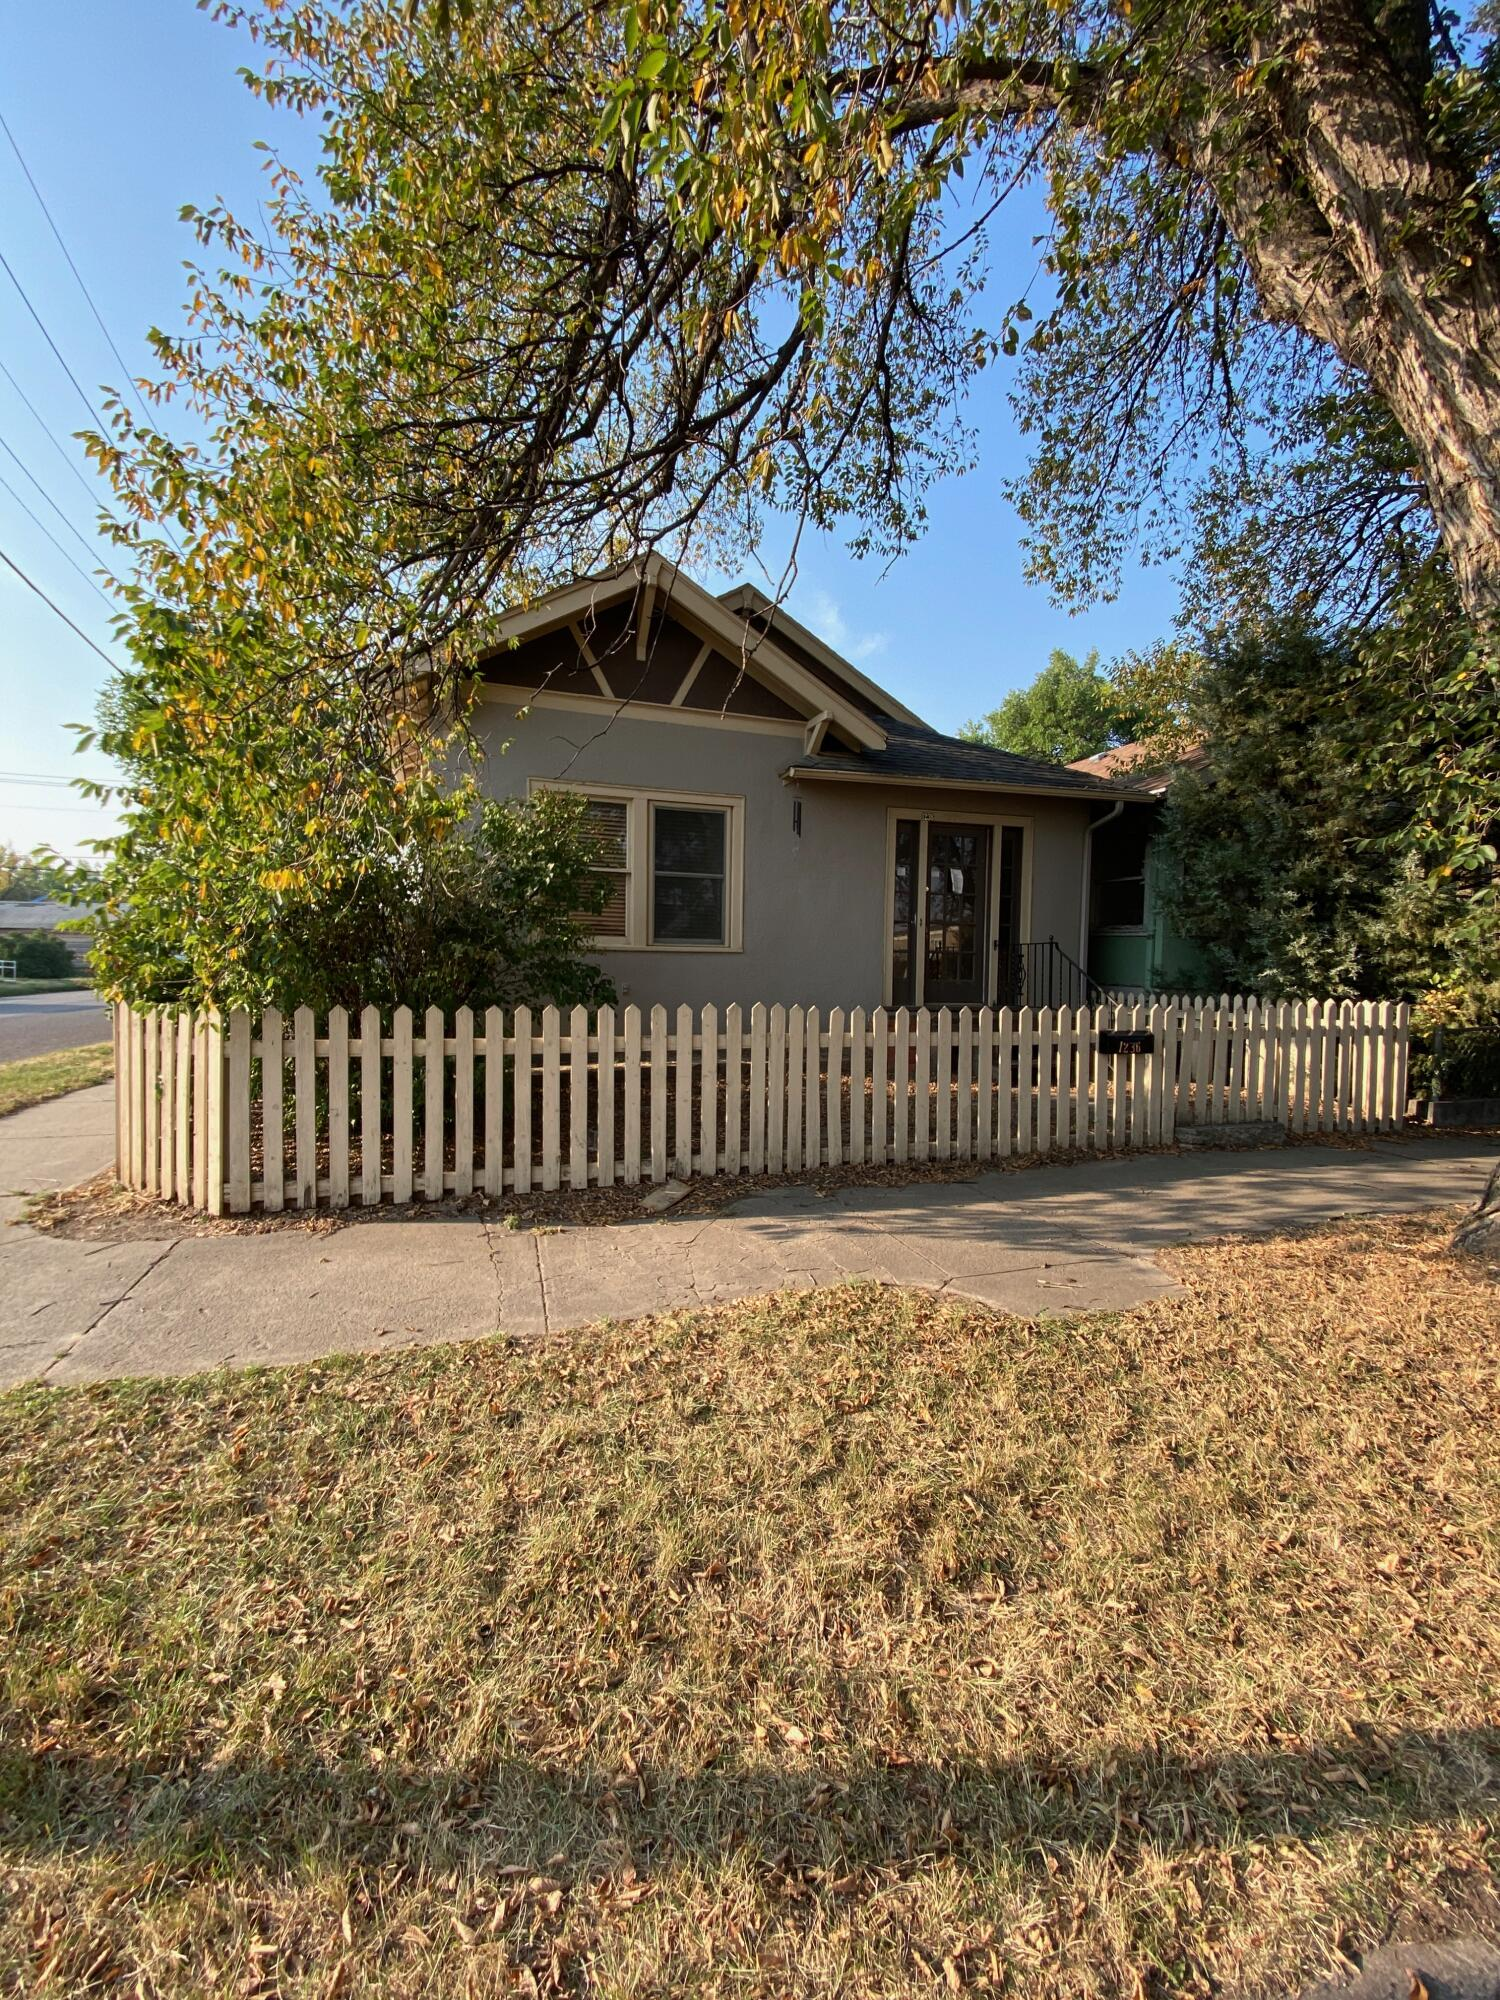 Check out this 2 bed, 1 bath home with an oversized 1 stall garage.  The main floor is mostly updated, with newer kitchen, bath, & also main floor laundry in one of the bedroom closets.Text/call John Carlson at 406-390-1381, or your real estate professional